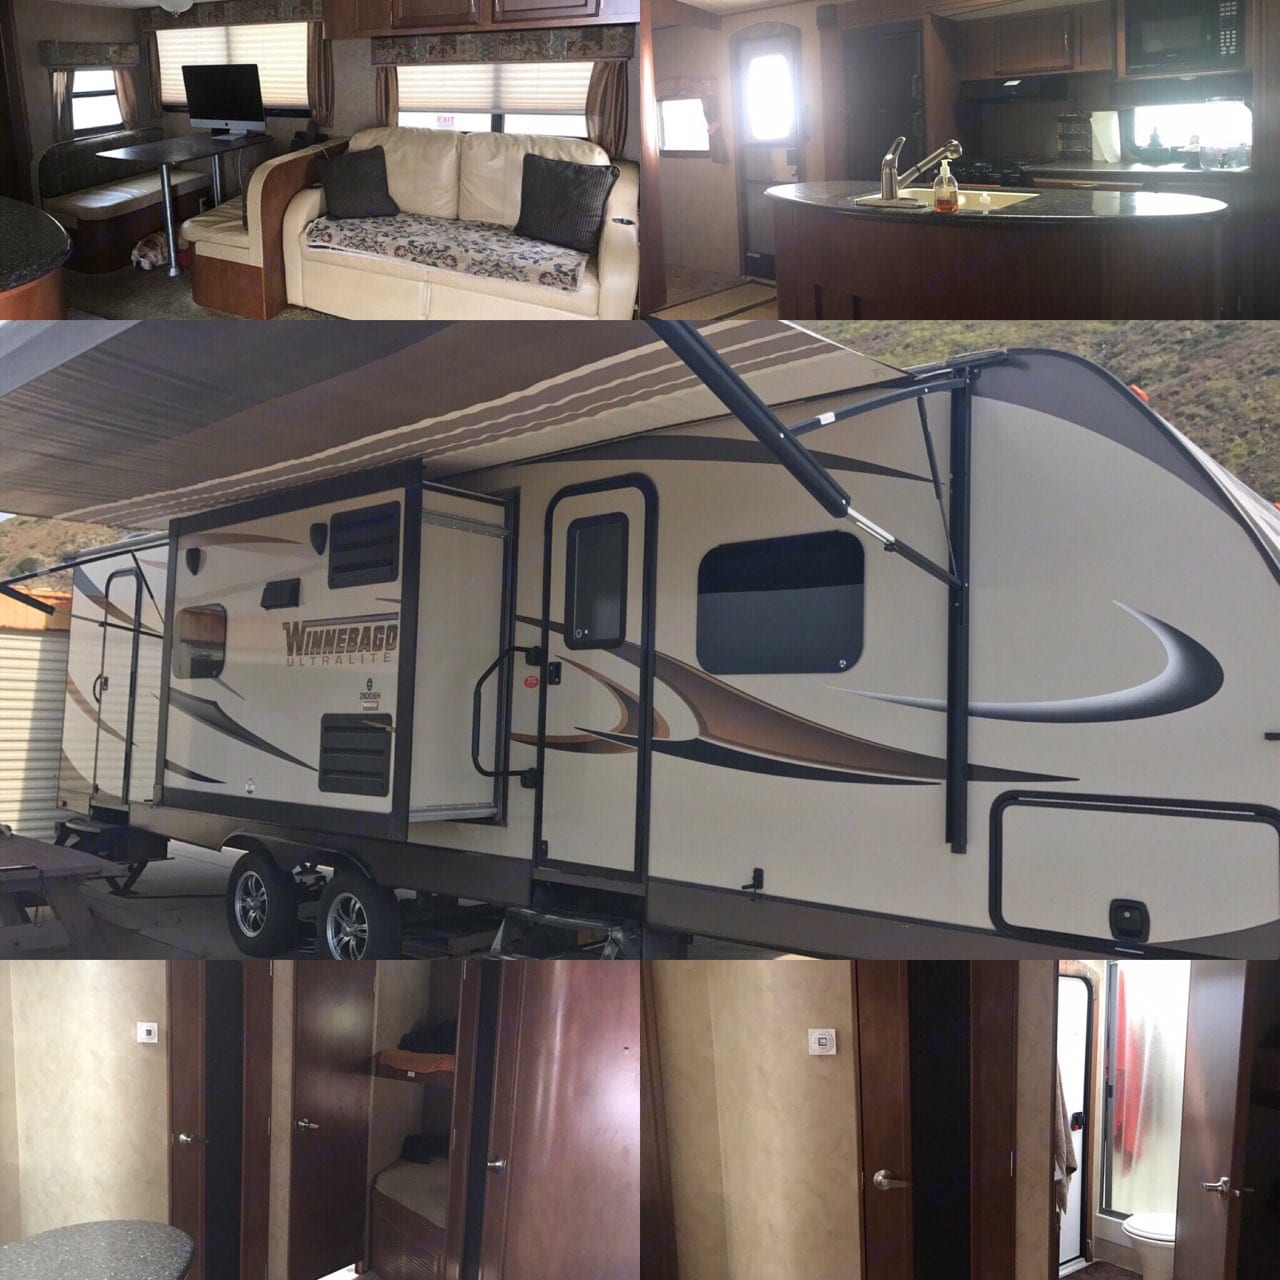 travel trailer must be hauled by truck not included for travel can be delivered to set location and picked up. Winnebago Ultralite 2013